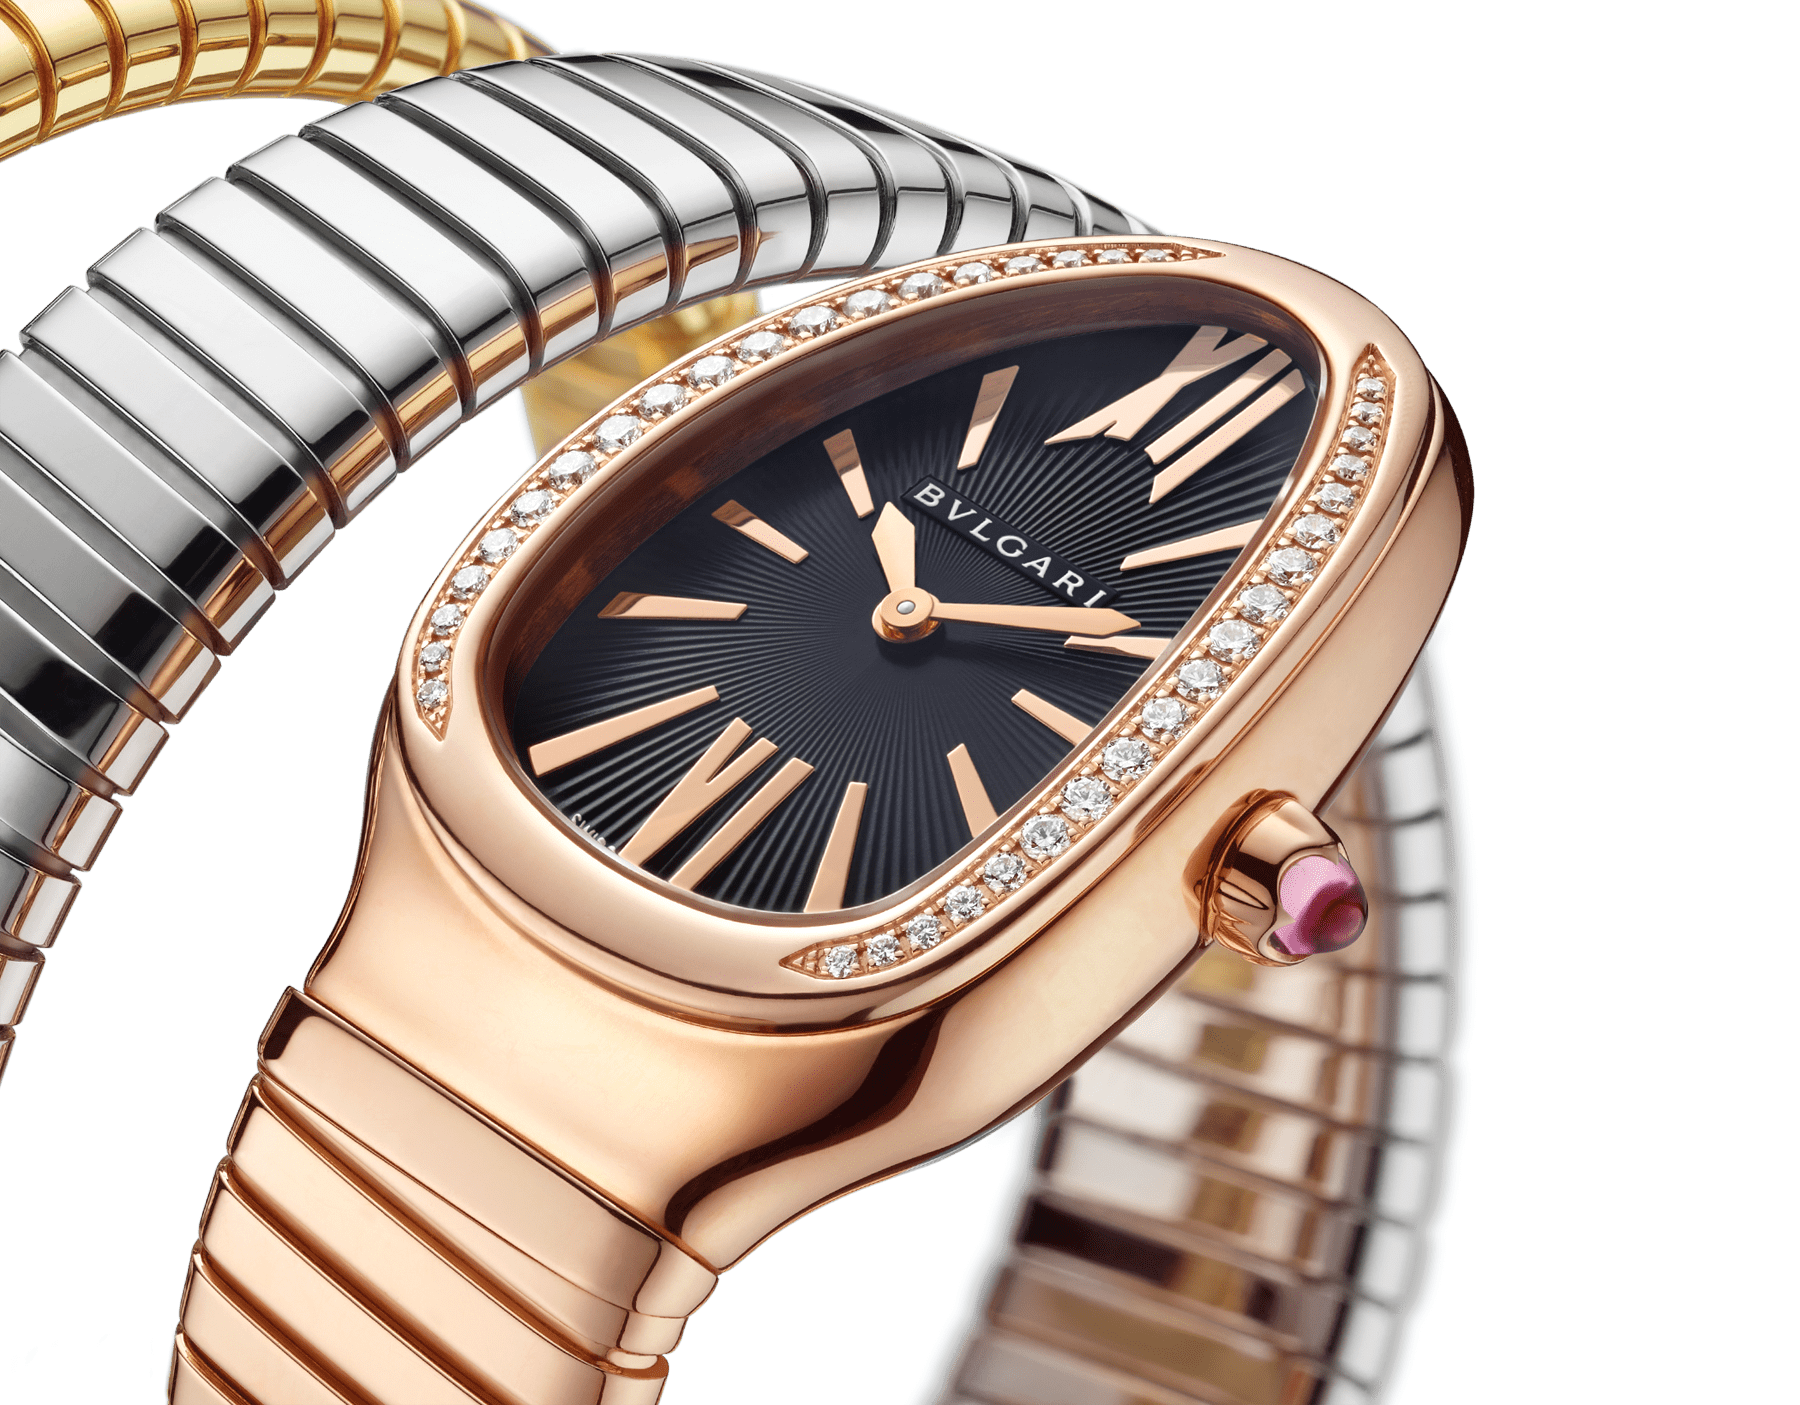 Serpenti Tubogas double spiral watch with 18 kt rose gold case set with round brilliant-cut diamonds, black opaline dial and 18 kt rose, yellow and white gold bracelet 102948 image 3